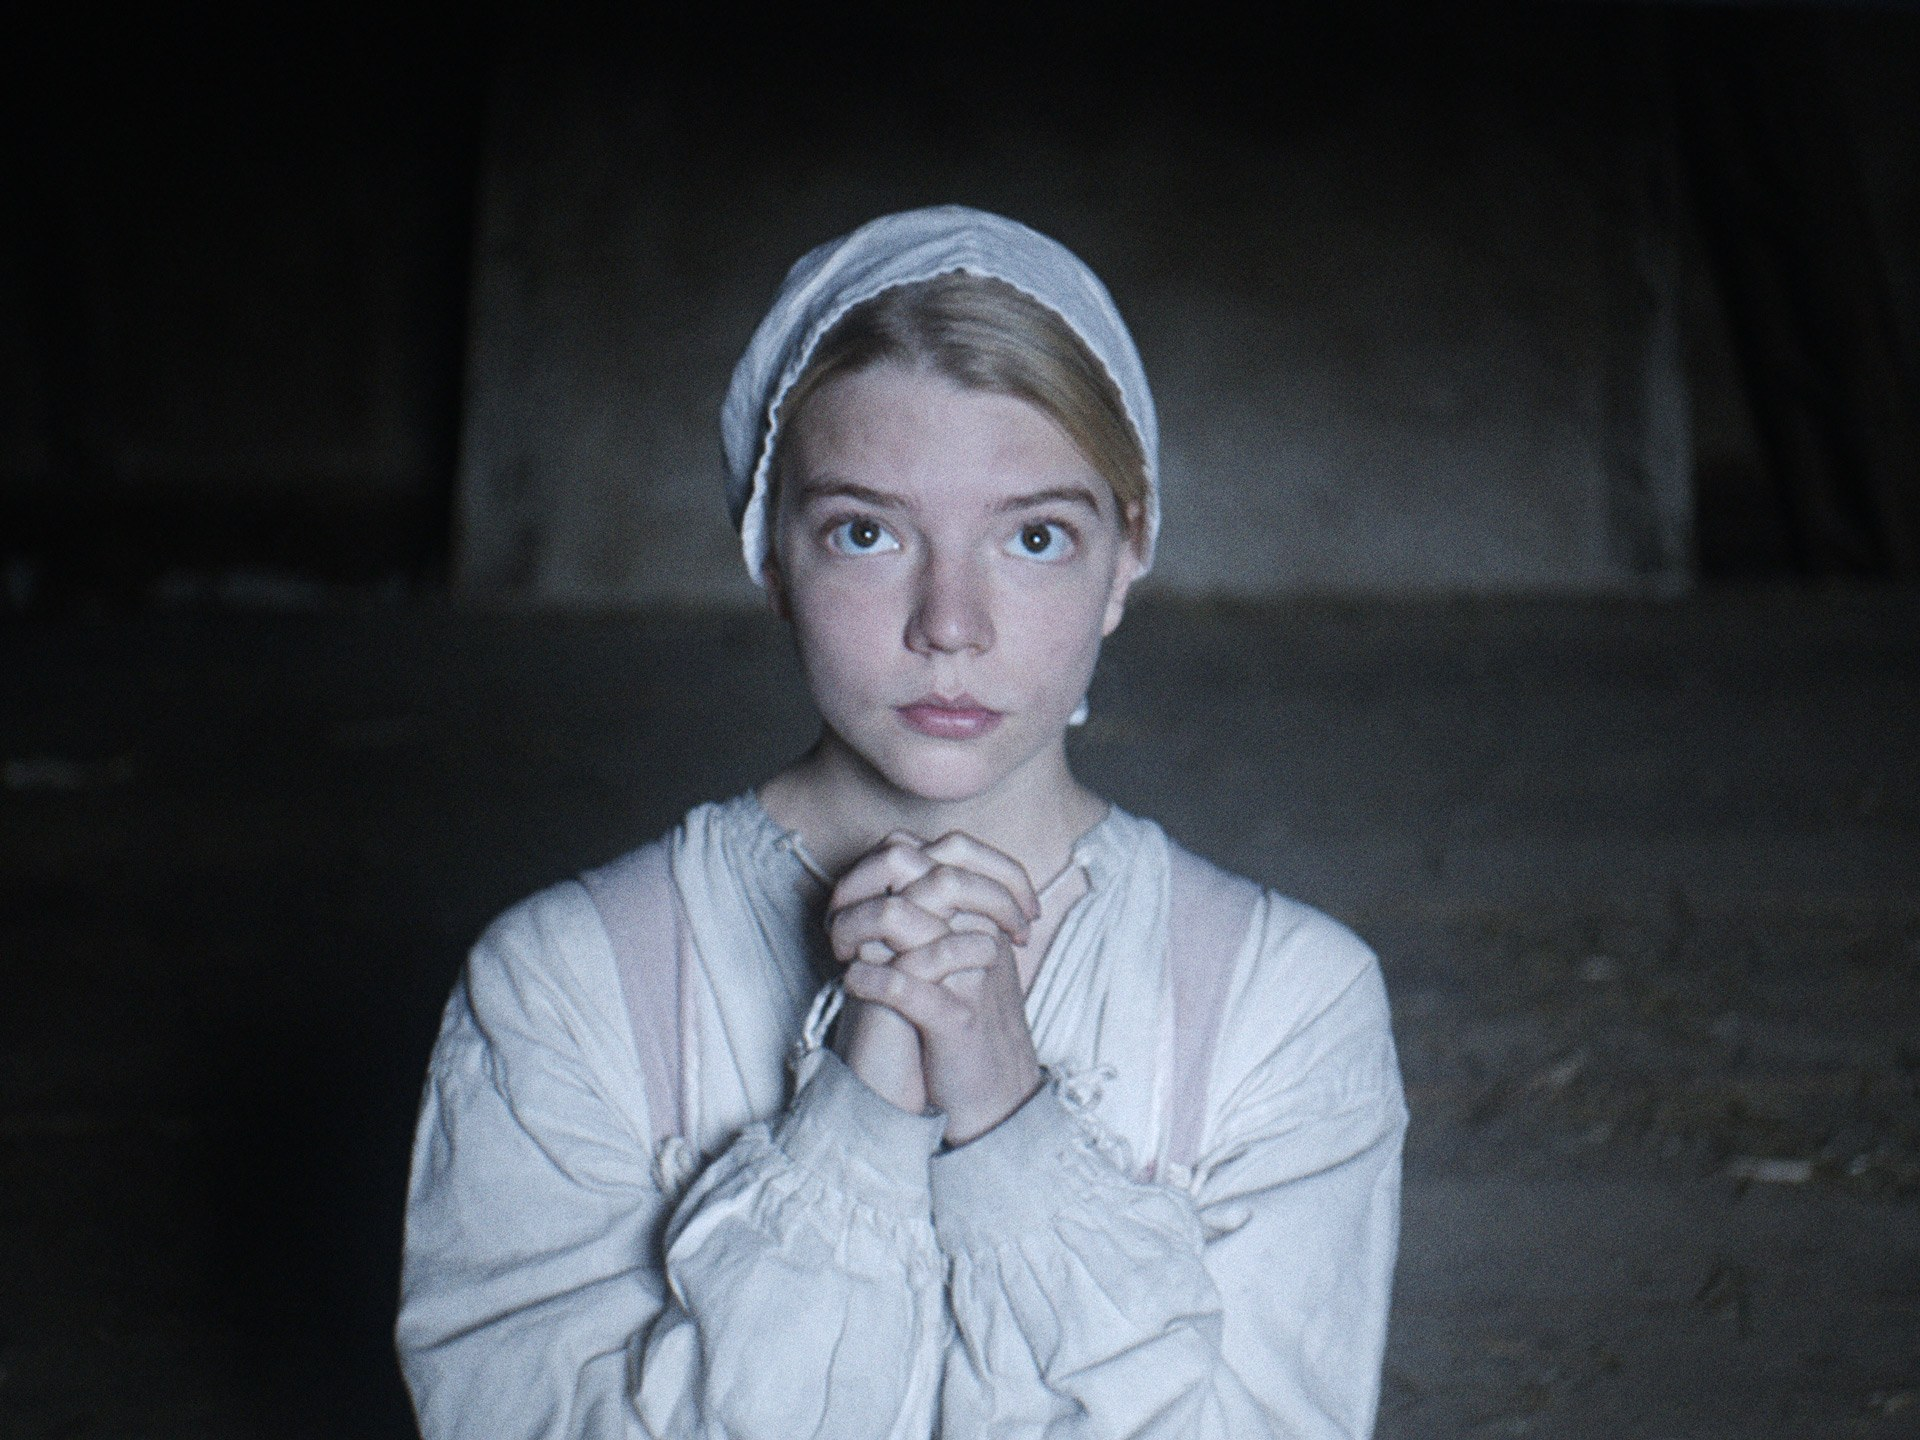 Thomasin (The Witch character) | Moviepedia | Fandom